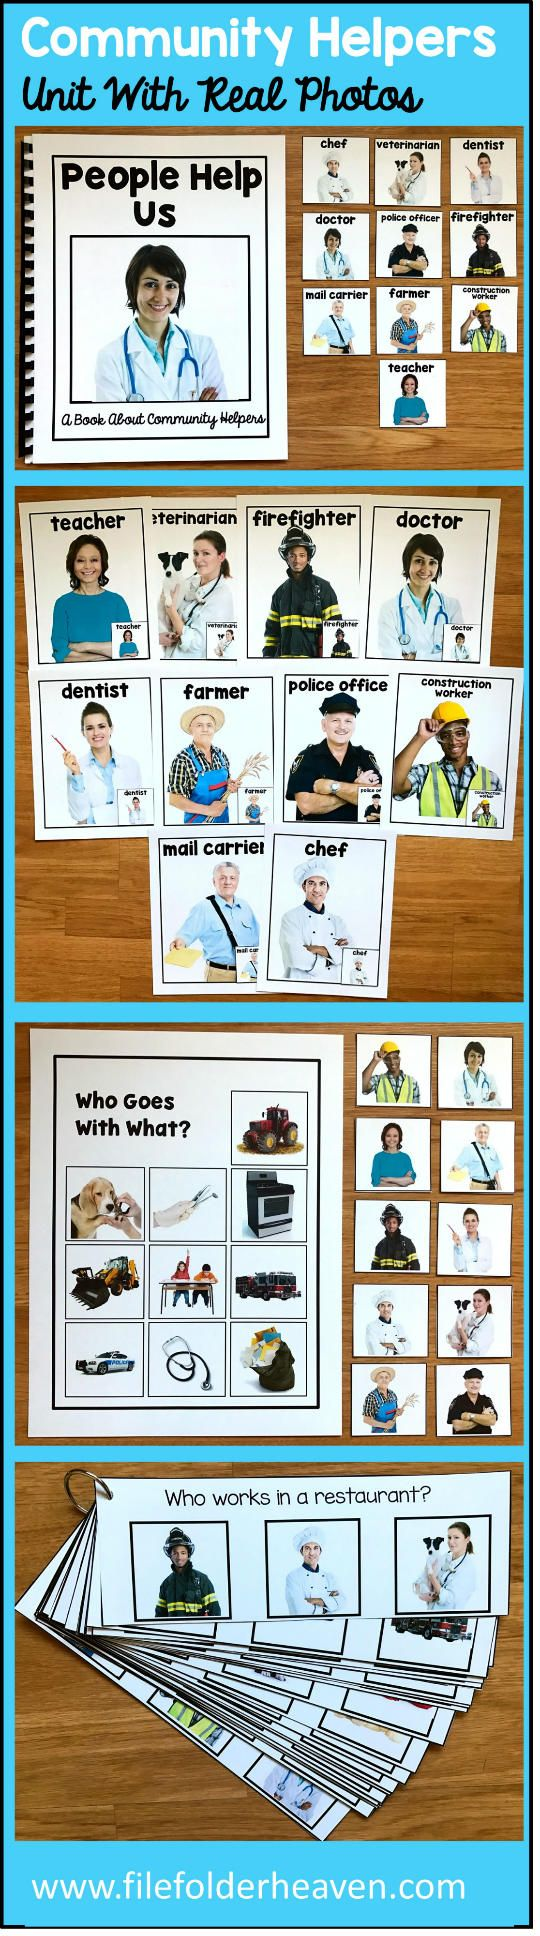 """This Community Helpers Unit w/Real Photos is packed full of hands-on activities for your community helpers theme. Activities Included With This Community Helpers Unit: 1. Adapted Book (Interactive Book) w/ interactive matching pieces 2. 1 Set of Interactive Bulletin Board Community Helpers Posters (10 total) 3. Who Goes With What Community Helpers Matching Mat 4 3 Sets of """"Big Flips"""" Matching Activities 5. 1 Set of Community Helpers WH-Questions"""